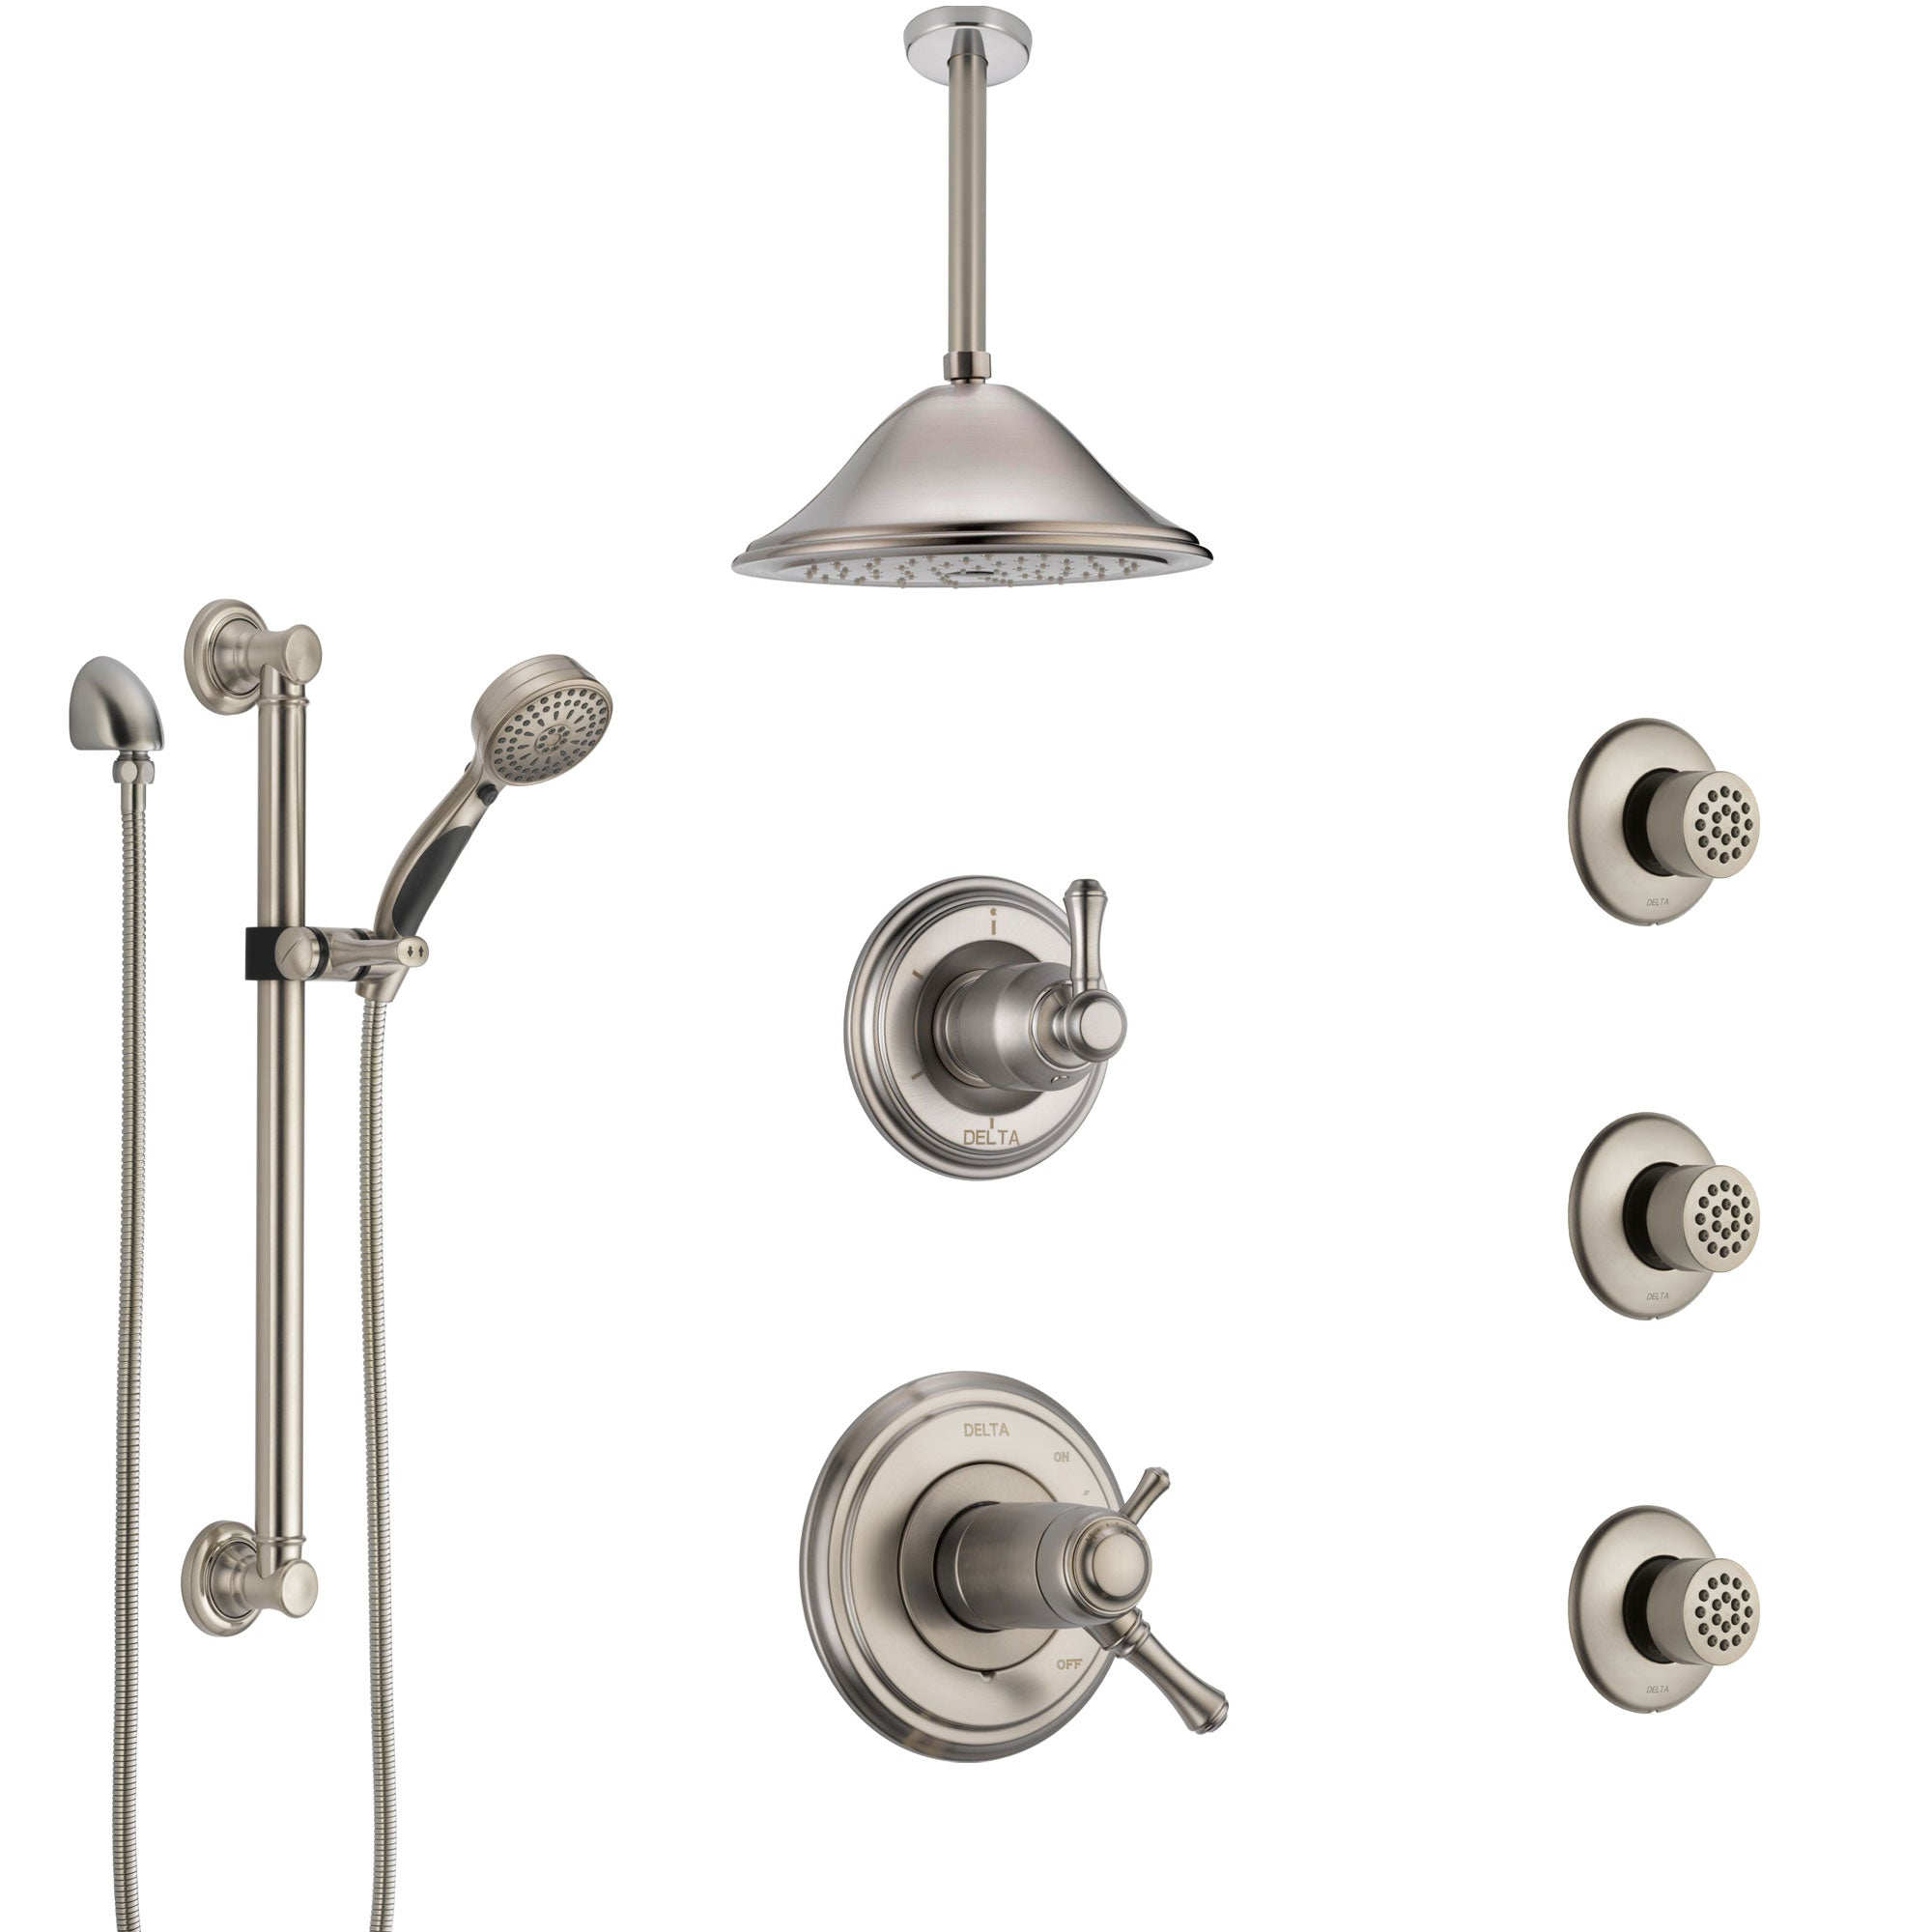 Delta Cassidy Dual Thermostatic Control Stainless Steel Finish Shower System with Ceiling Showerhead, 3 Body Jets, Grab Bar Hand Spray SS17T971SS6